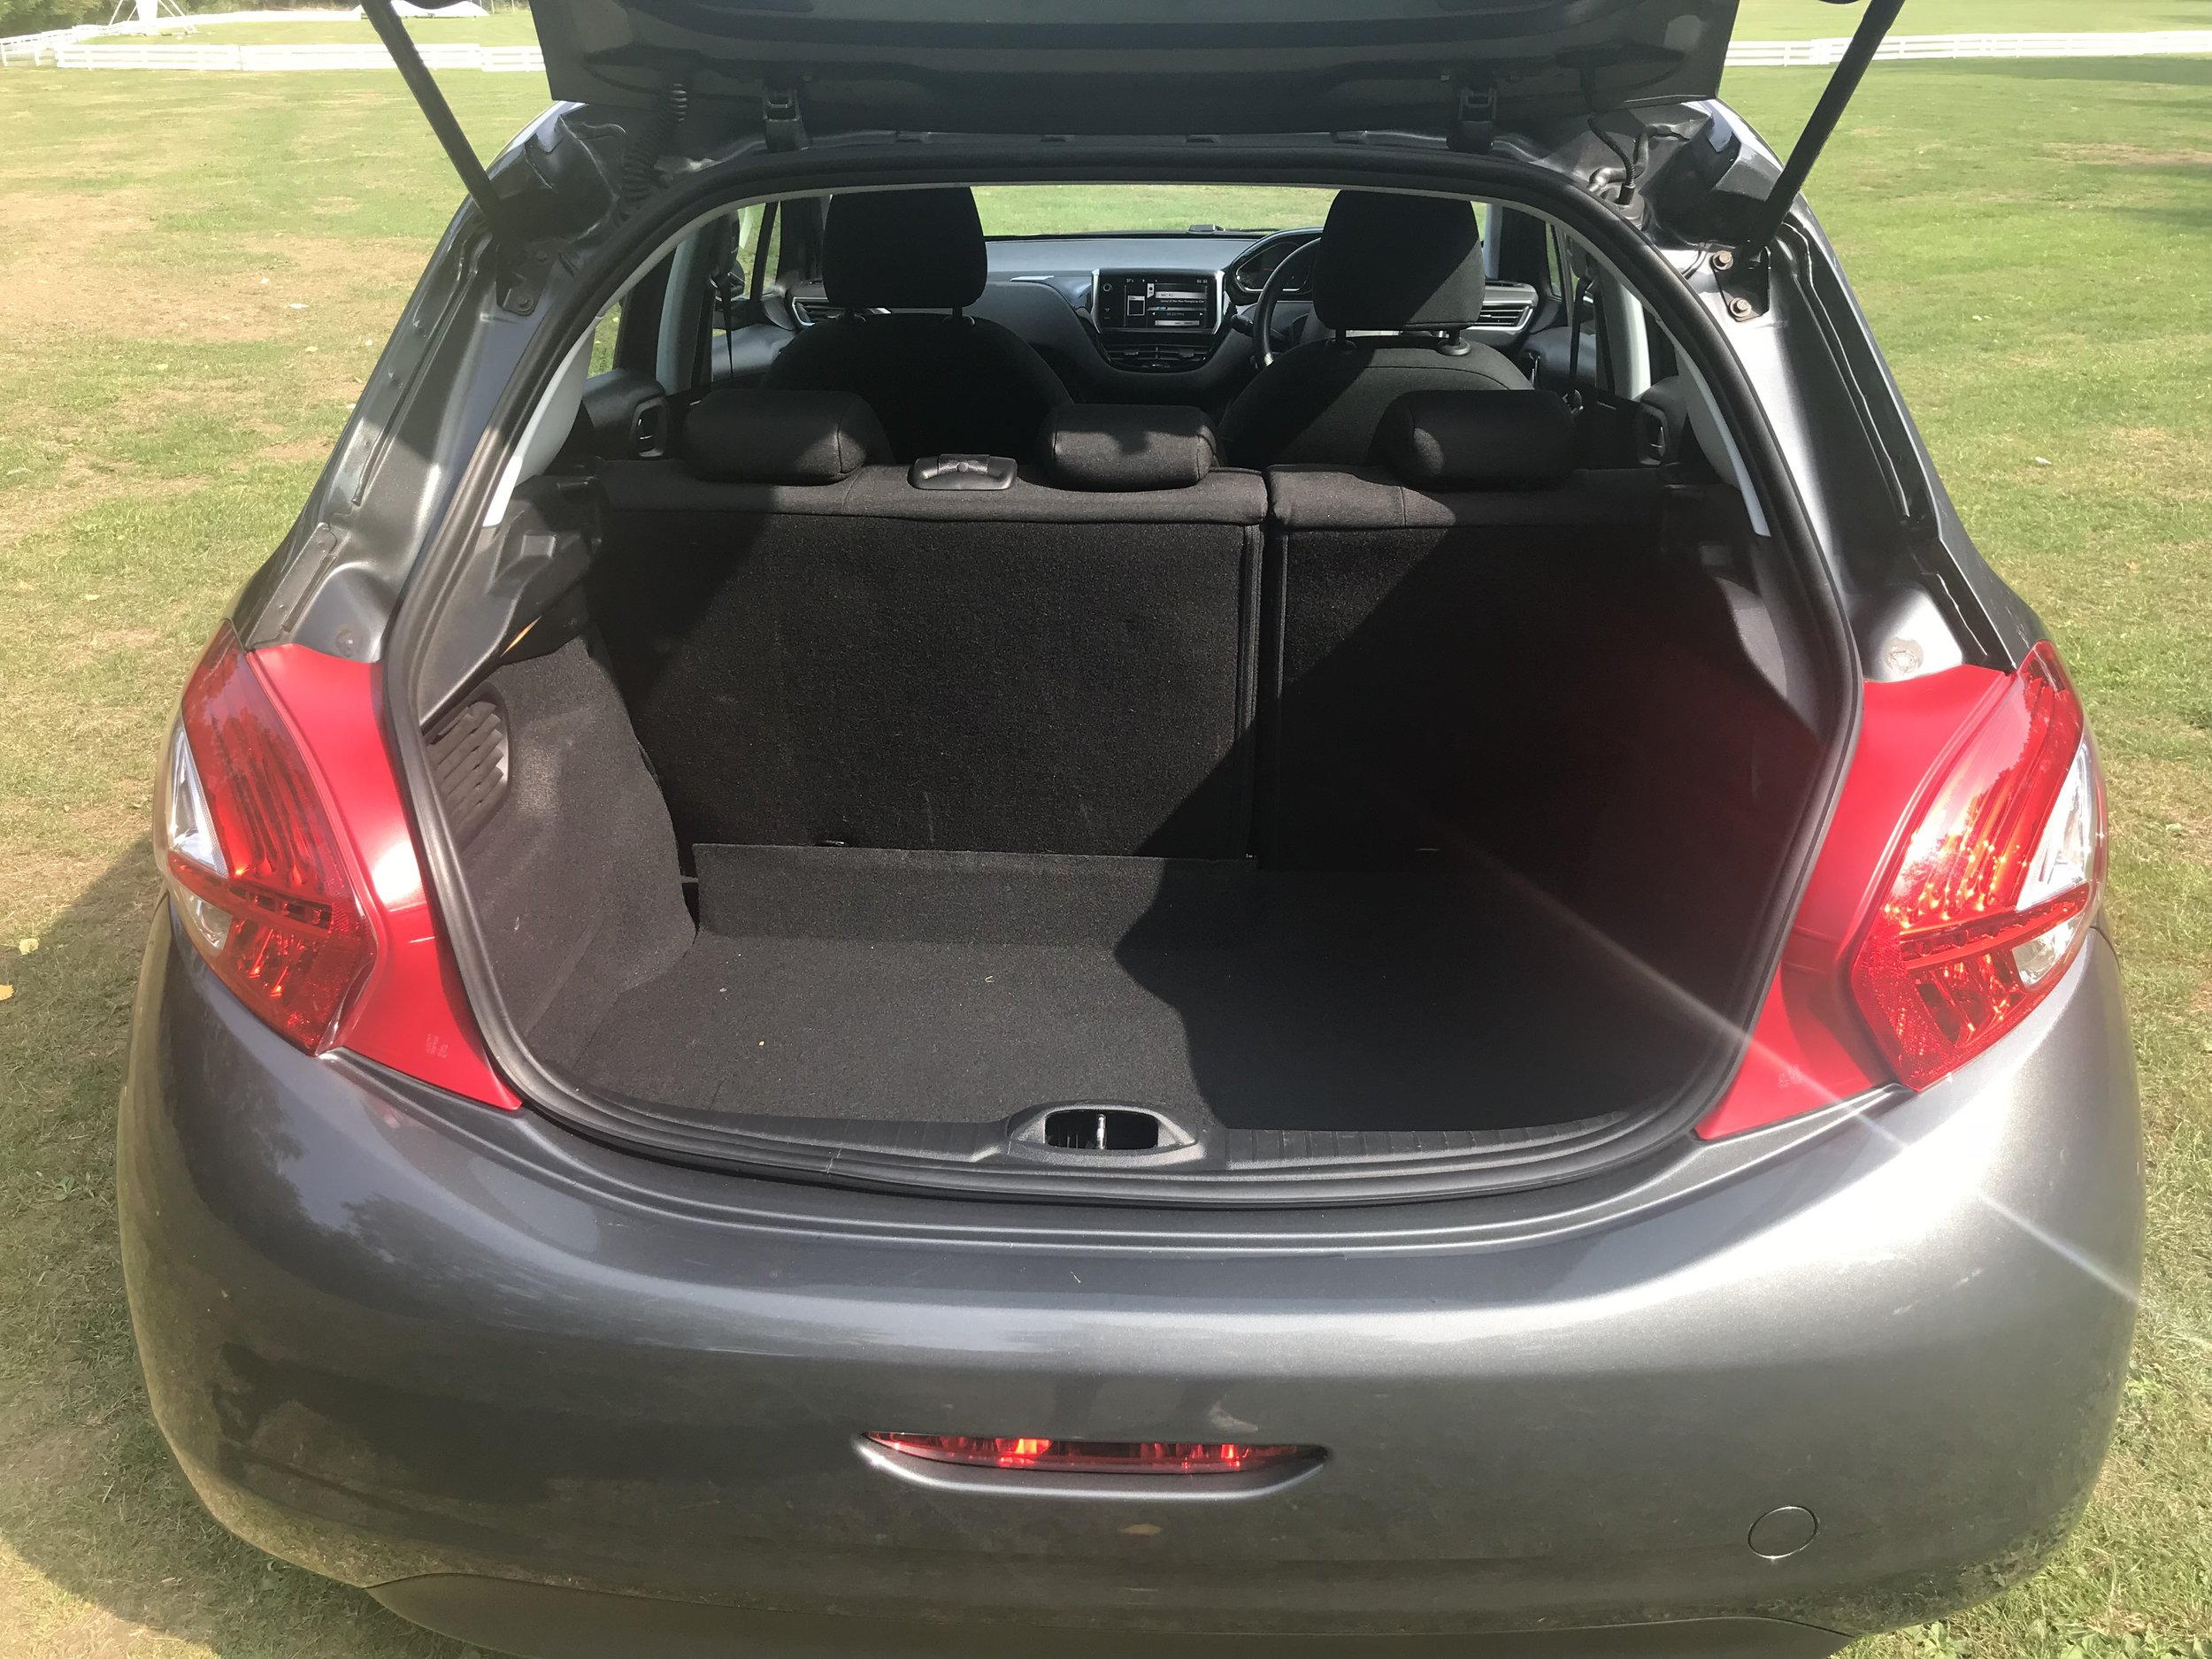 peugeot-208-vti-active-forsale-regalmotion-regalpreowned-usedcar-redditch-bromsgrove-worcestershire-6479-16.jpeg